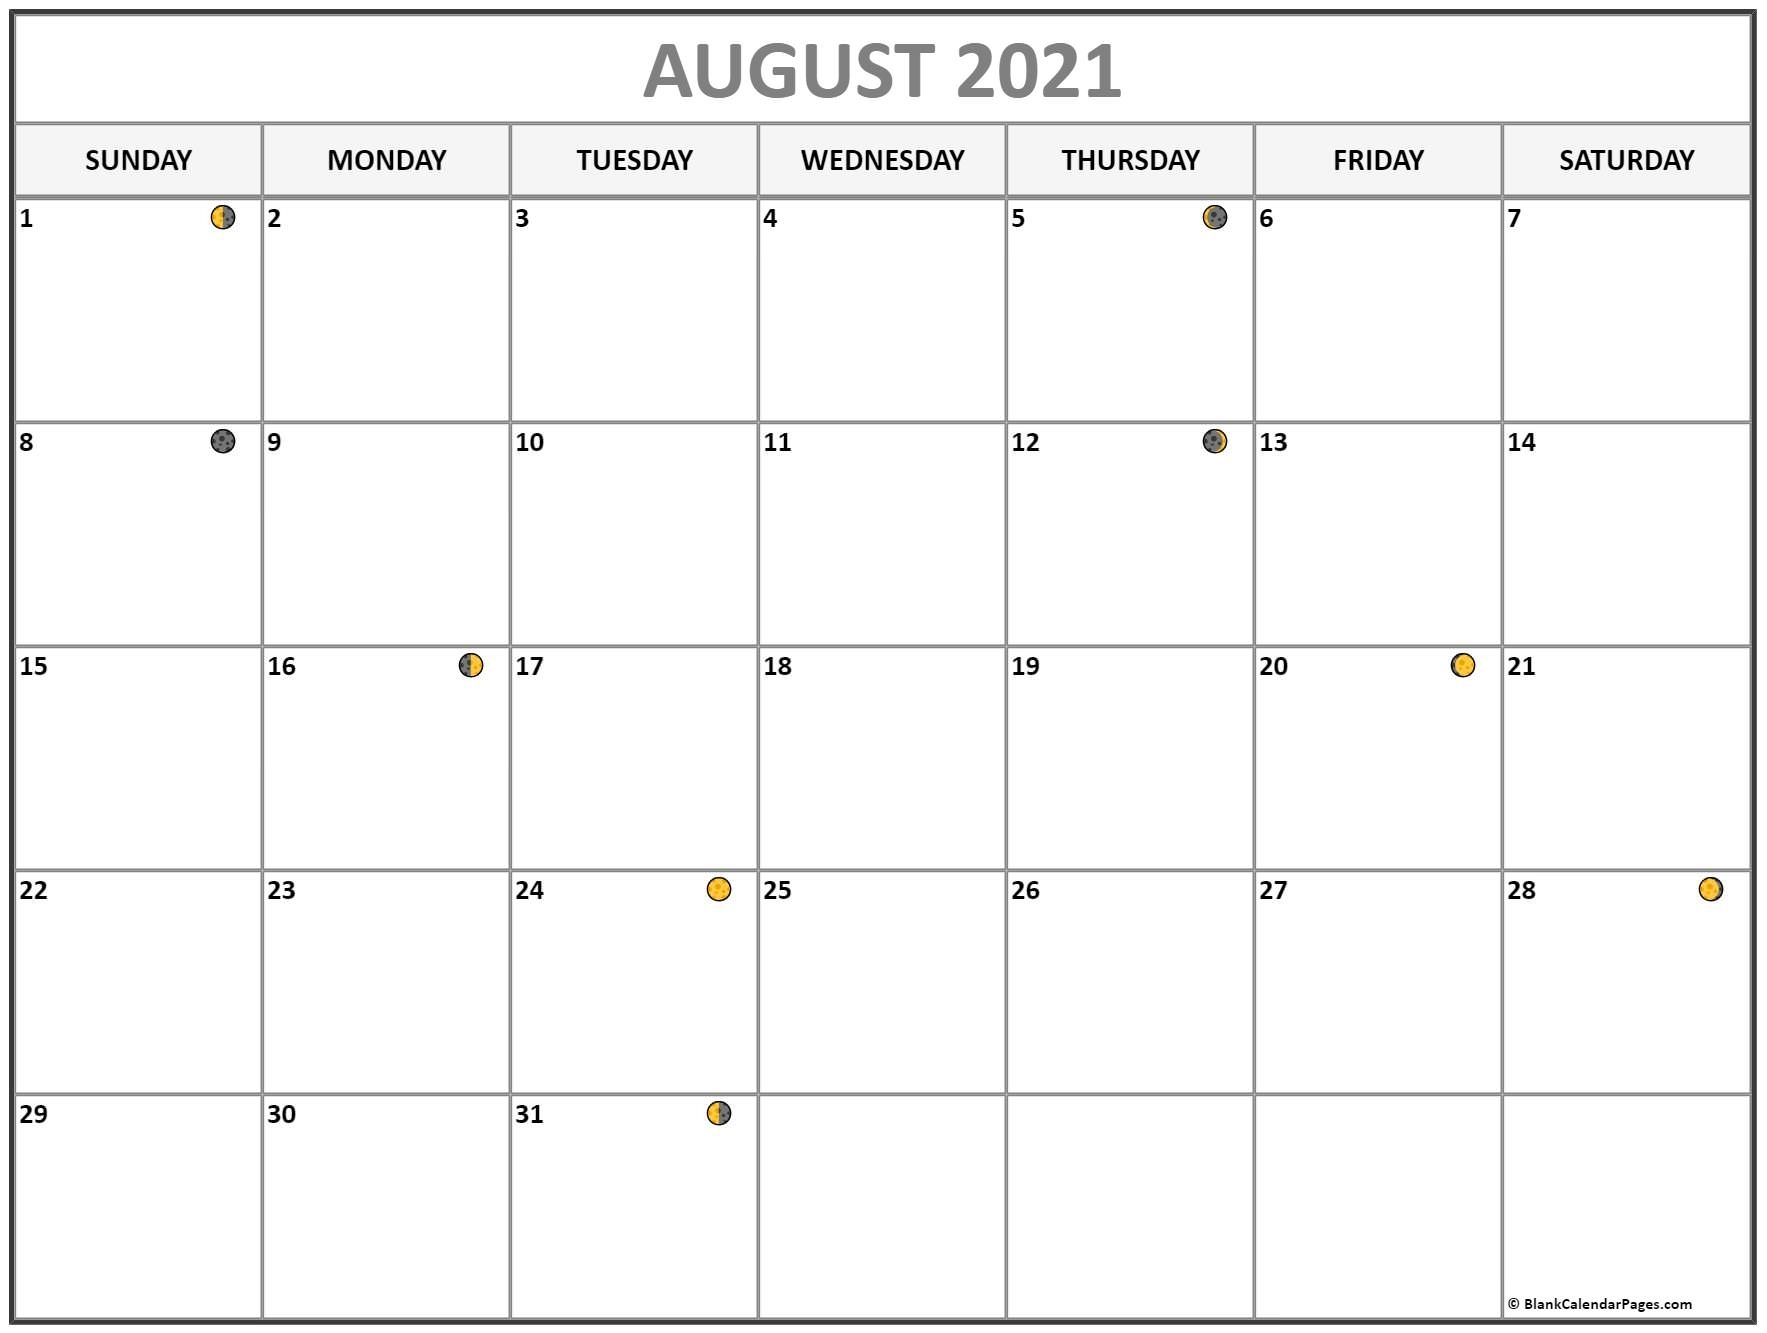 Collect Fishing Lunar Calendar August 2021